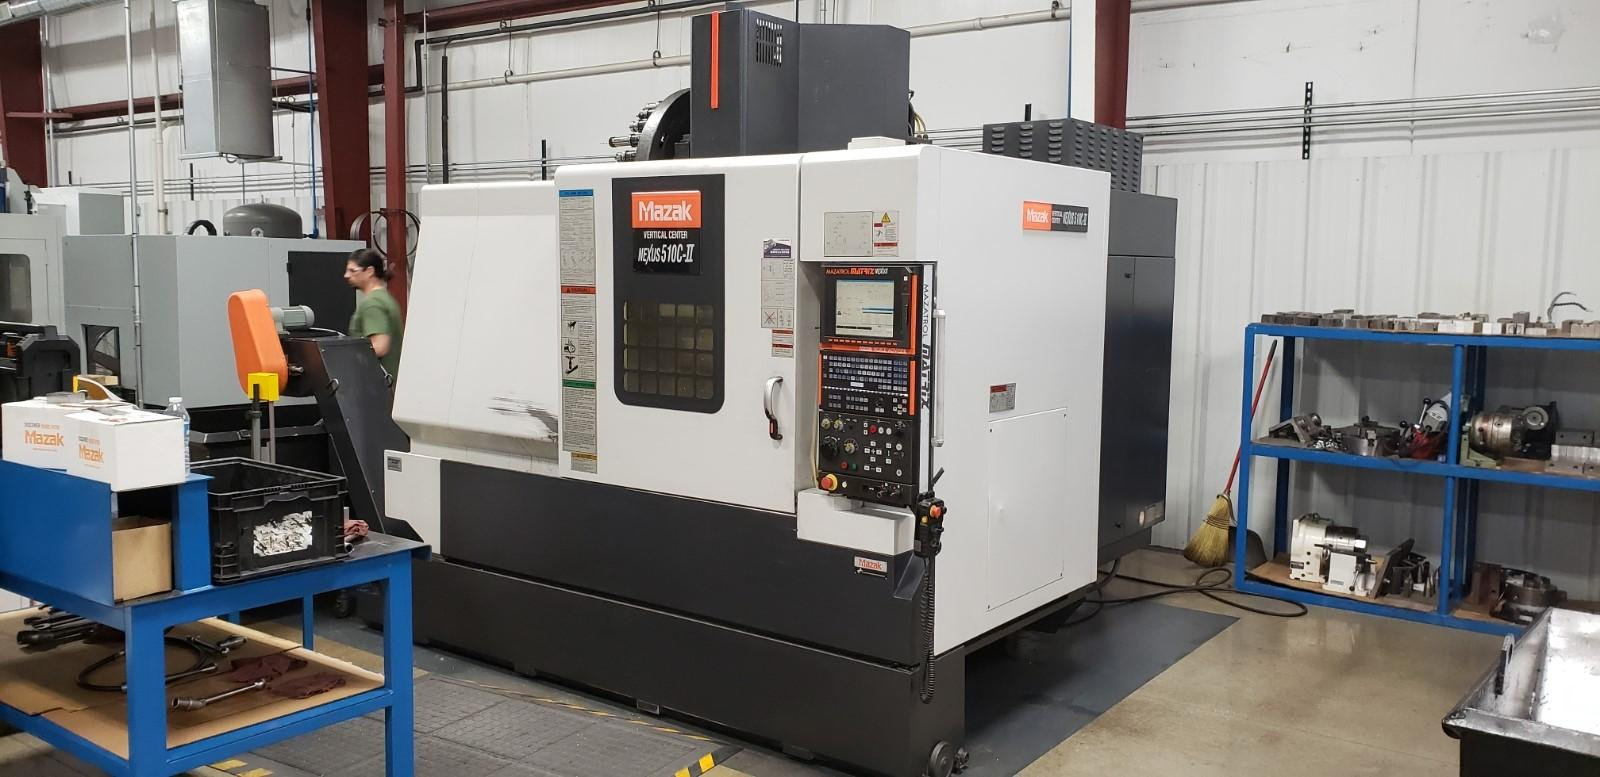 "Mazak VCN-510C-II CNC Vertical Machining Center, Nexus Control, 41""/20""/20"" Travels, 12K Spindle, Coolant Through Spindle, 30 ATC, 25 Horsepower, ATLM, Synchronous Tap, Handwheel, Conveyor, 2007"